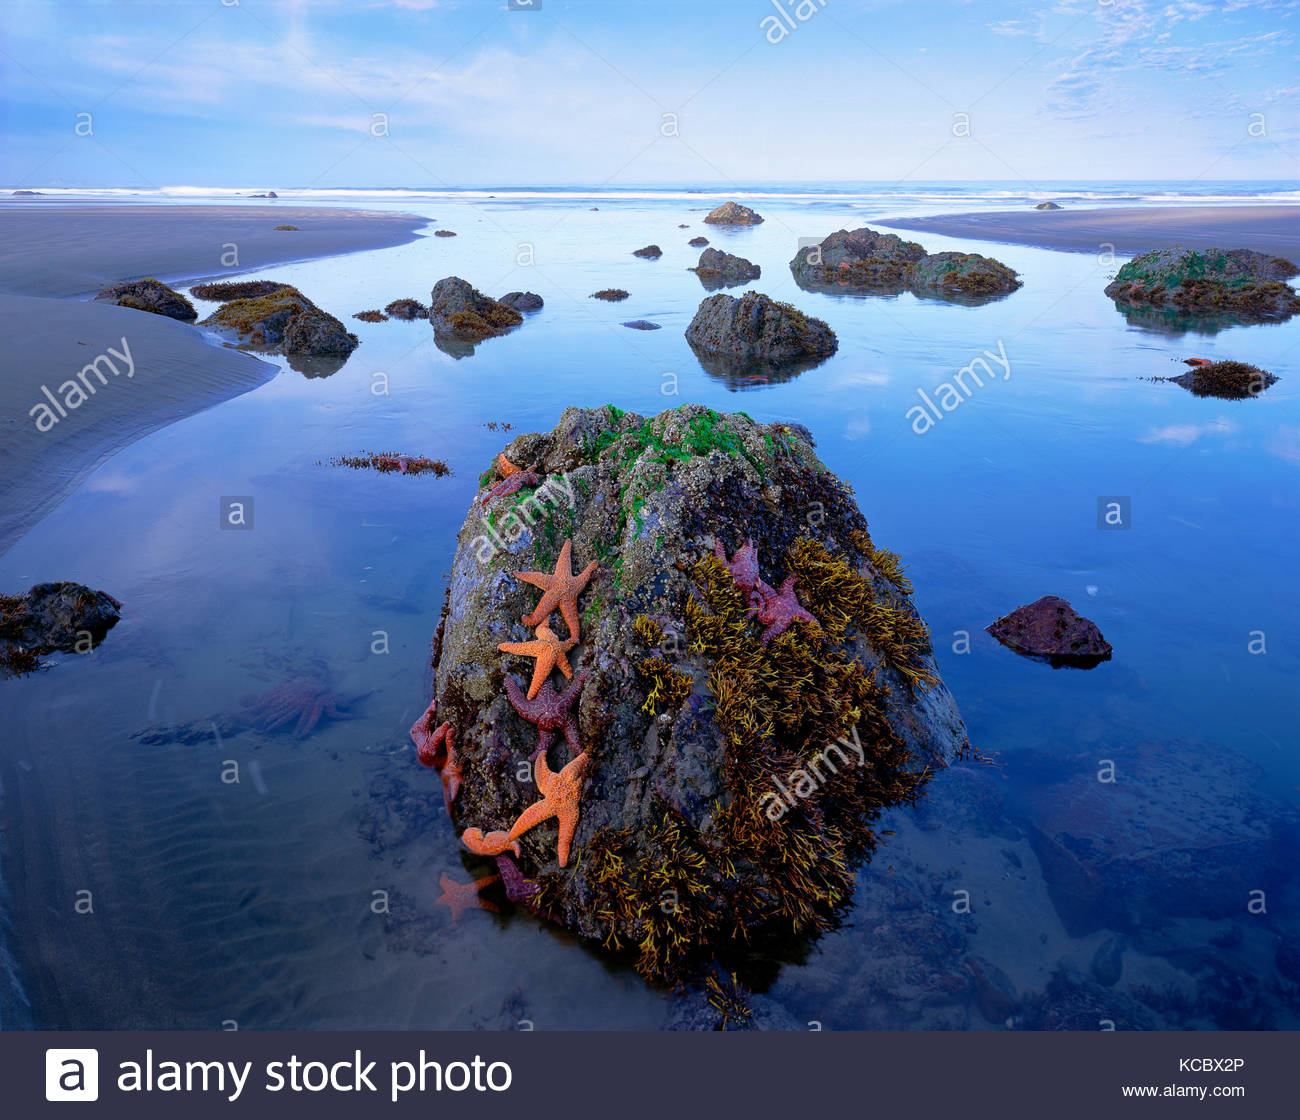 Sea Stars and Rock, Olympic National Park, Washington - Stock Image